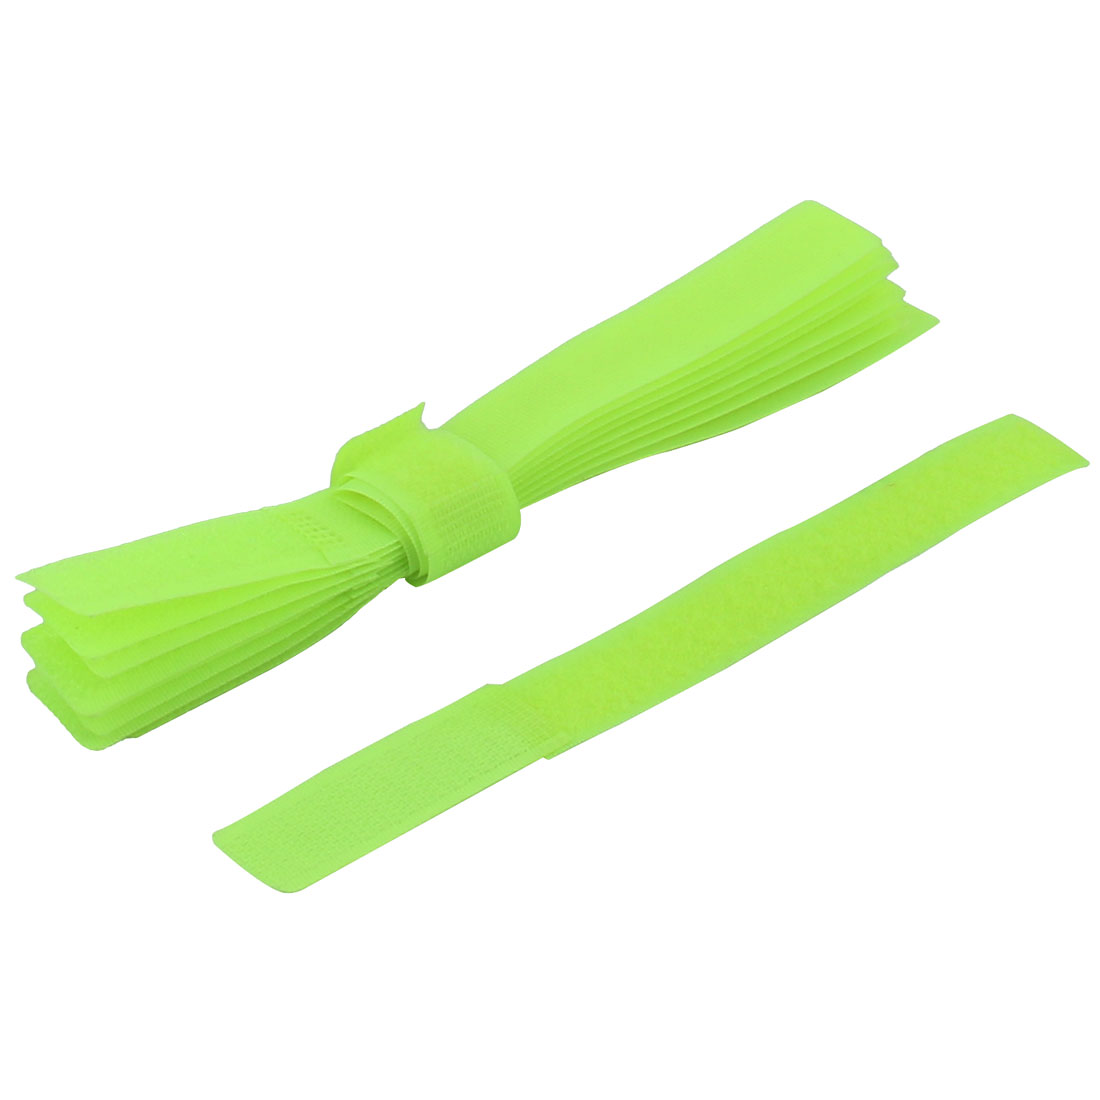 Nylon Self Adhesive Back Sticky Fastener Strong Pad Light Green 10pcs